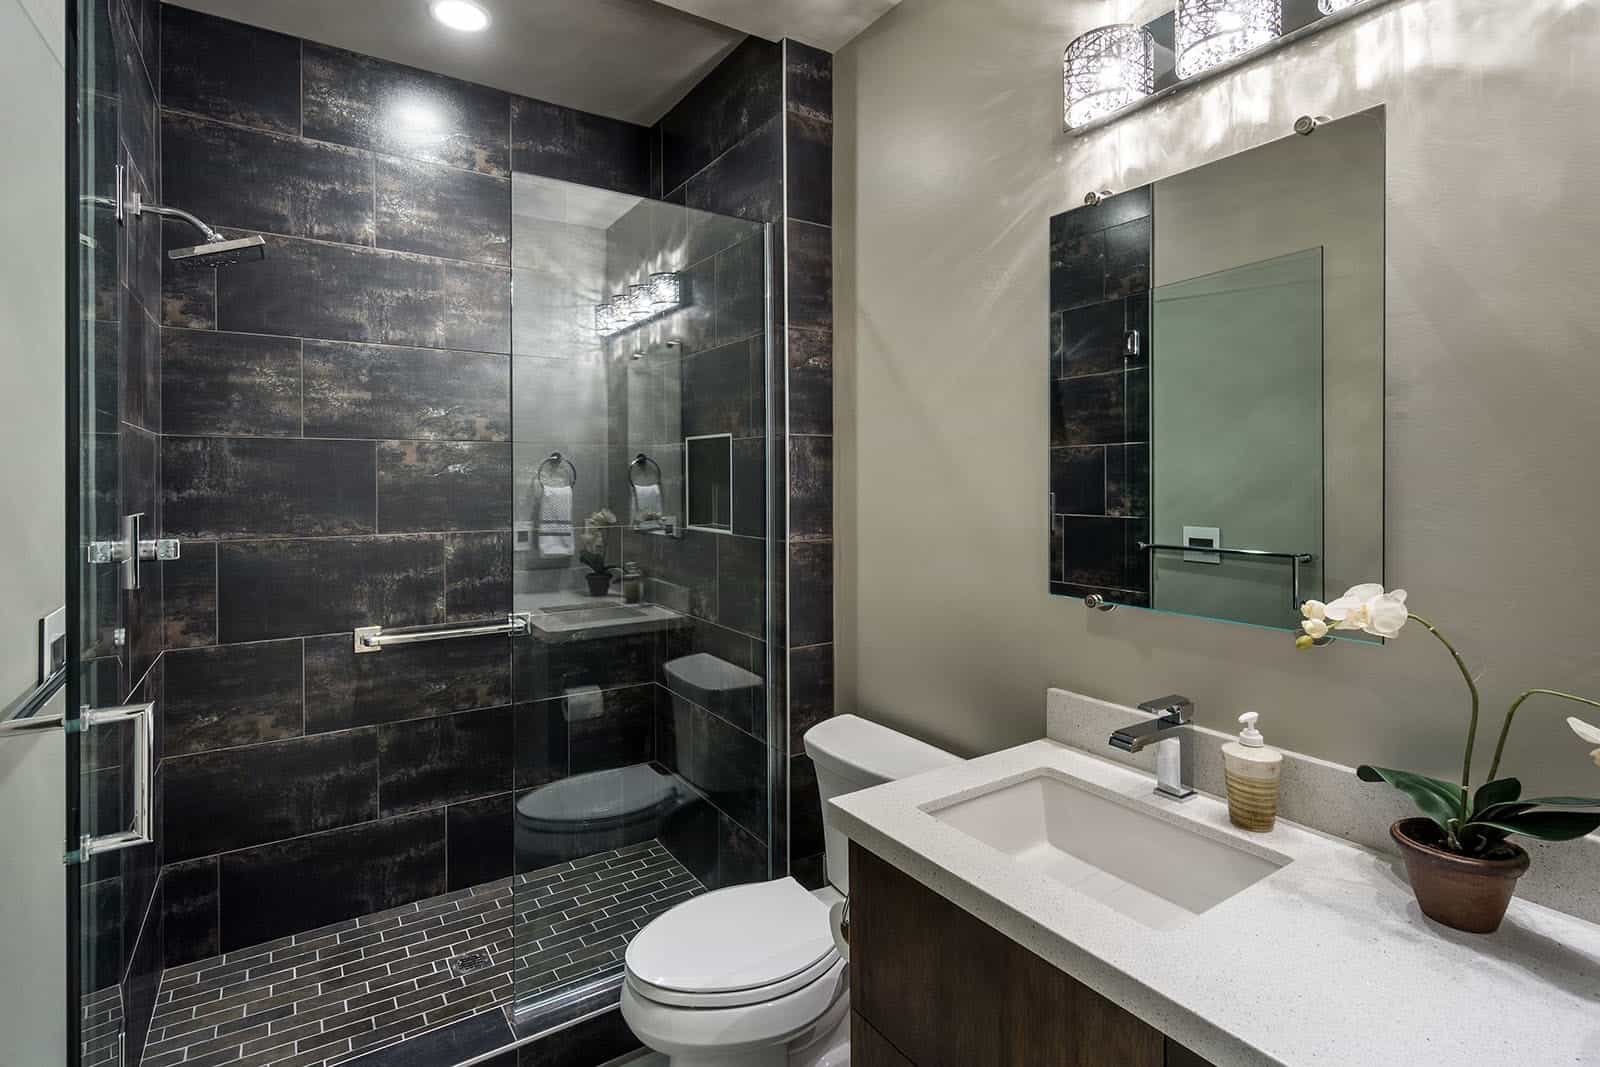 Dark Marble Wall And Light Countertop Creates Sharp Contrast In Contemporary Bathroom (View 9 of 10)